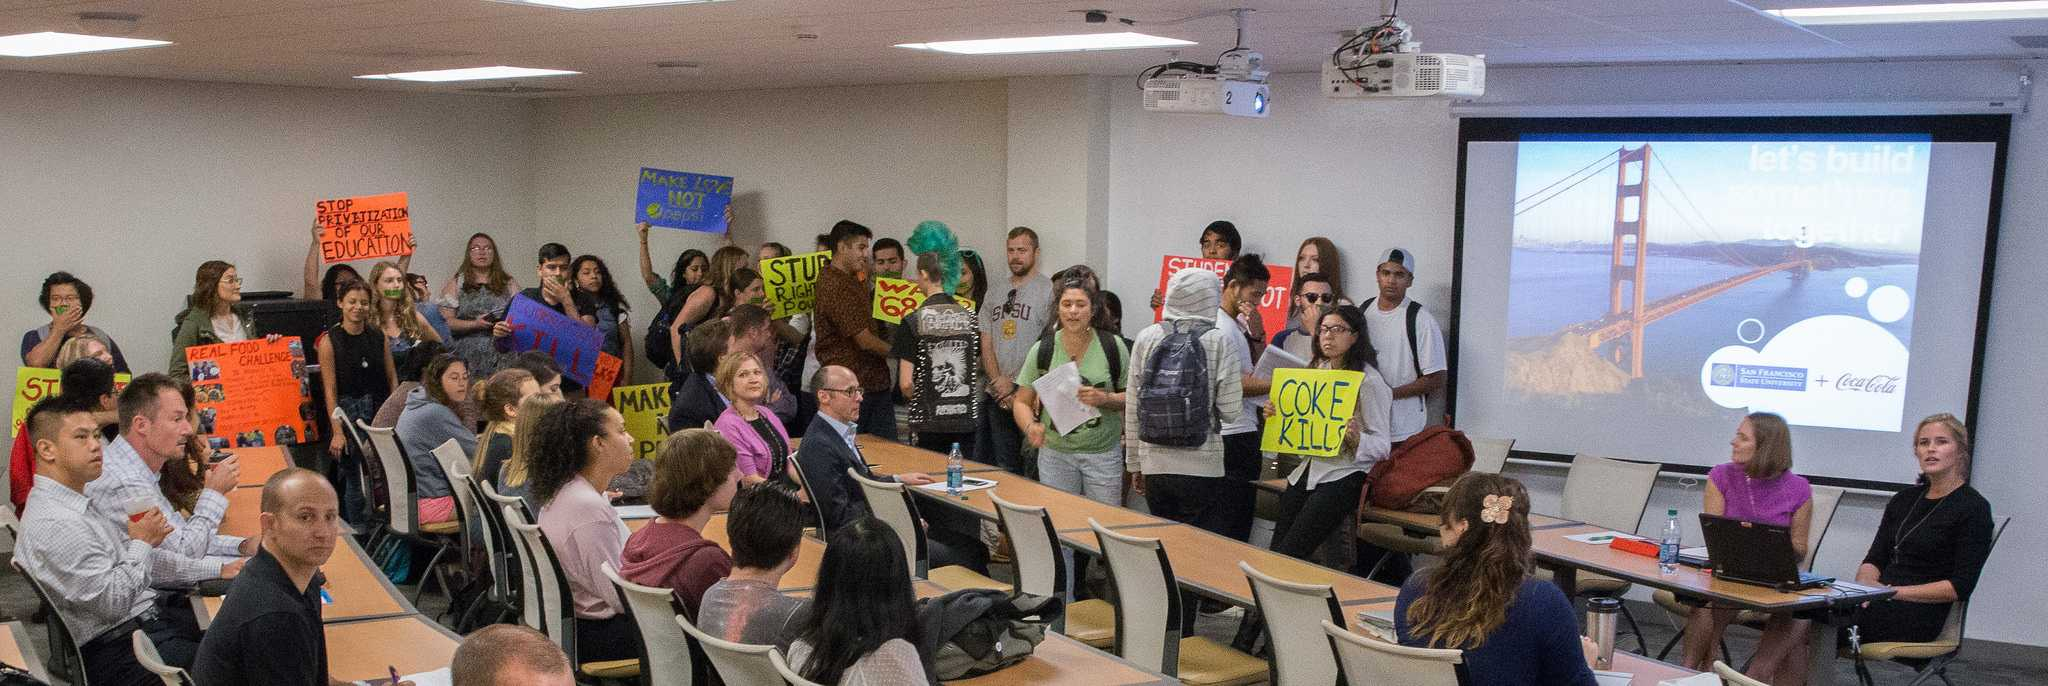 Students oppose the sale of pouring rights at SF State by disrupting a town hall meeting  with Coca-Cola, a potential company that may begin supplying all beverages on campus Wednesday, Oct. 14, 2015. (Brian Churchwell / Xpress)